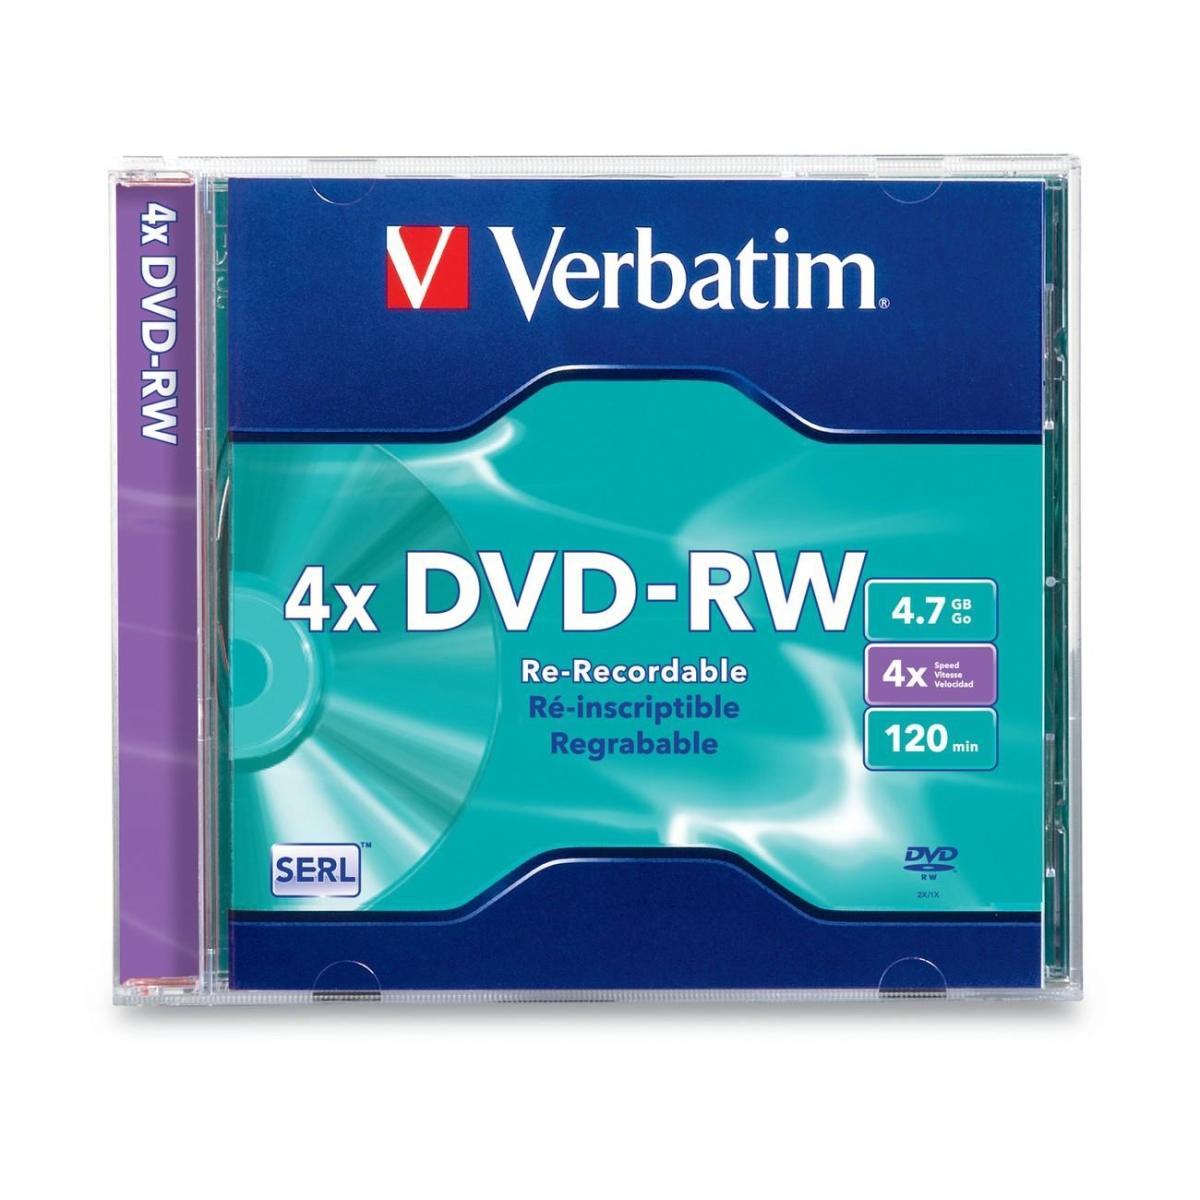 DVD-RW 4.7GB 4X with Branded Surface - 1pk Slim Case - 4.7GB - 1 Pack